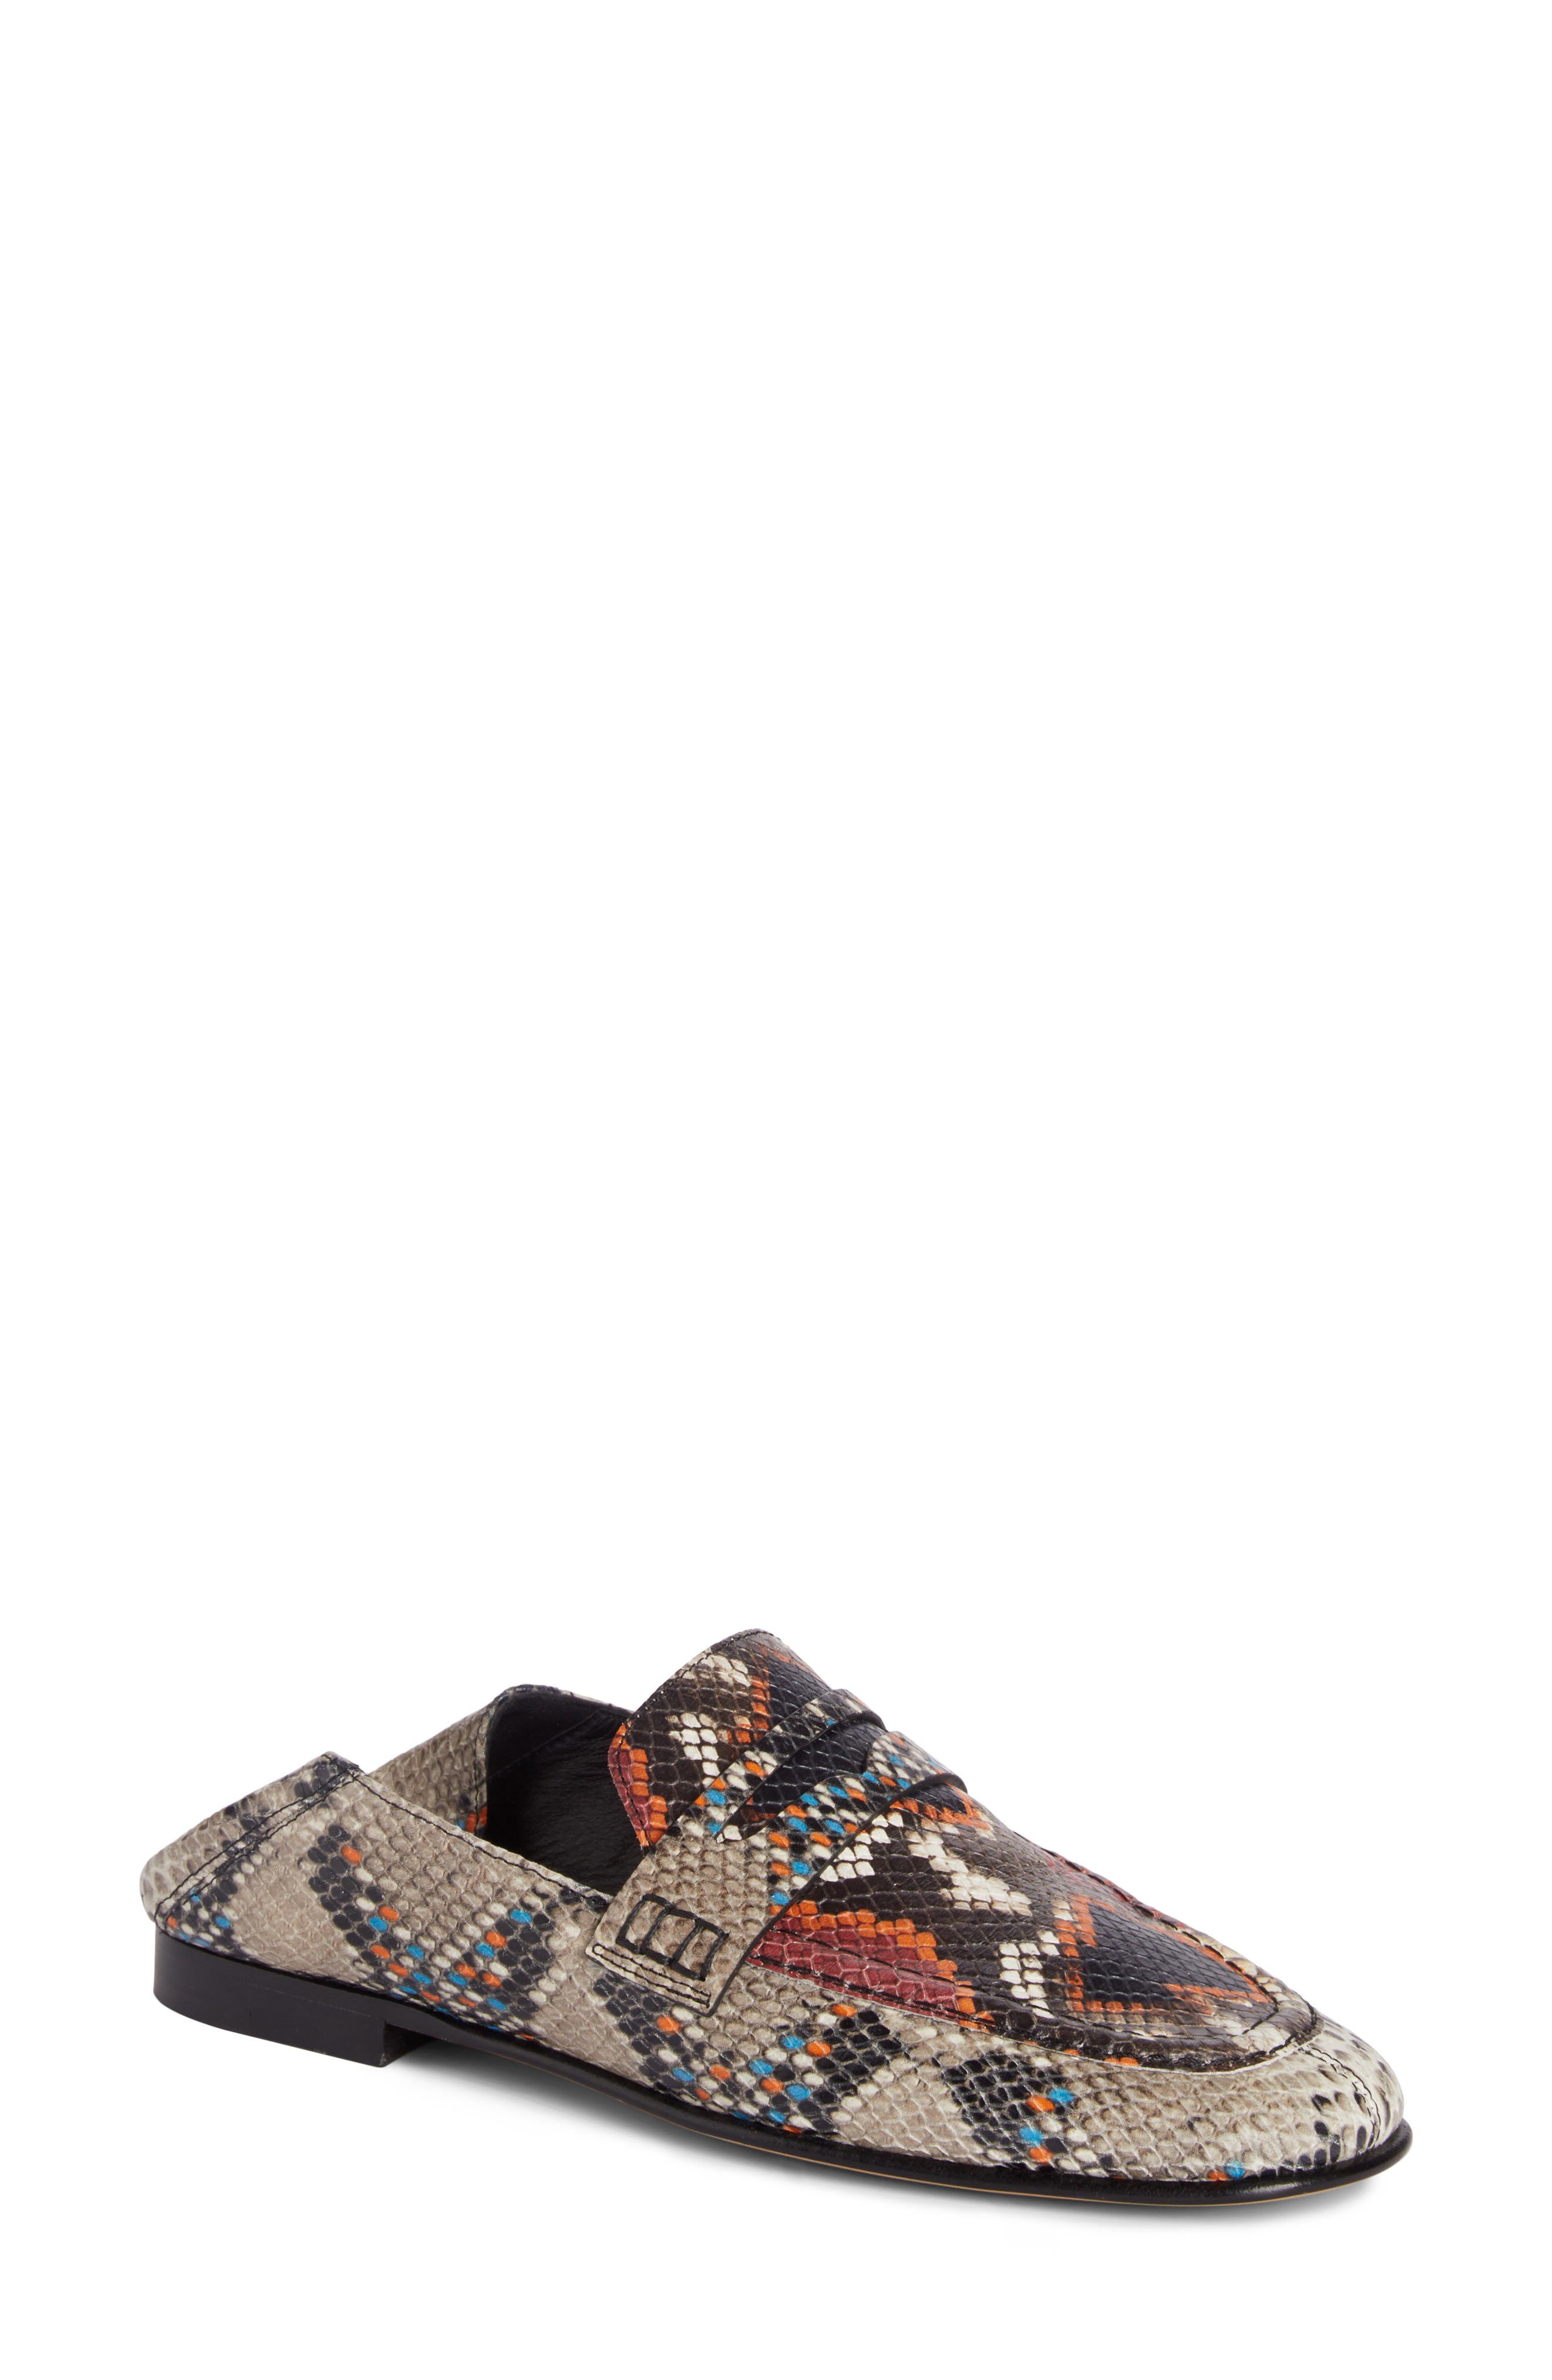 Fezzy Snakeskin Embossed Convertible Loafer,                             Main thumbnail 1, color,